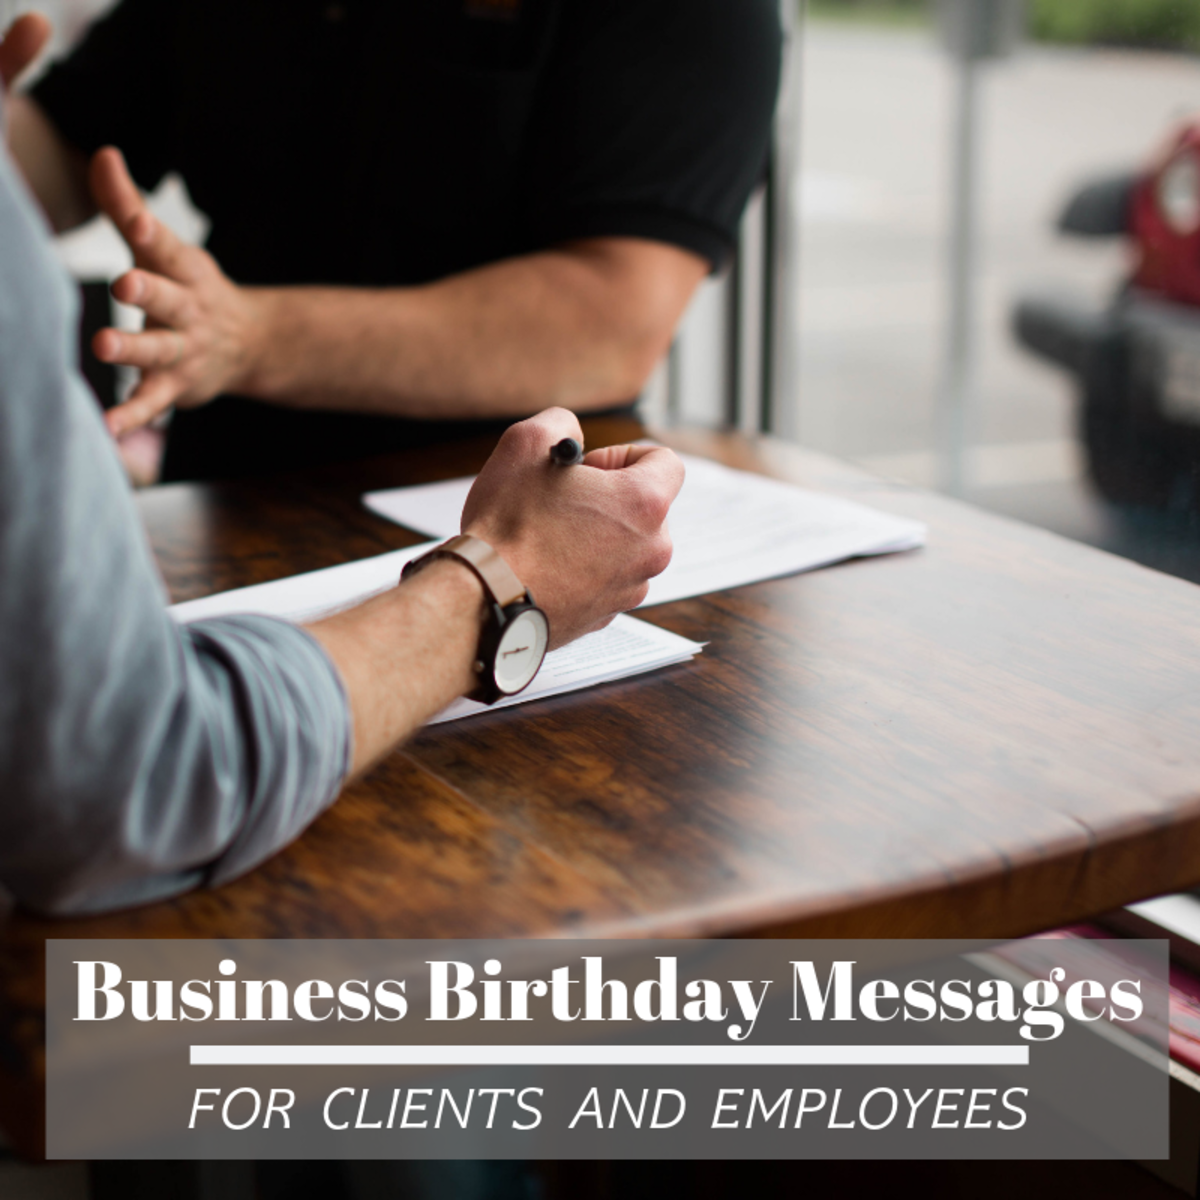 Writing personalized birthday cards to your employees and clients is a great way to show the community that you care.